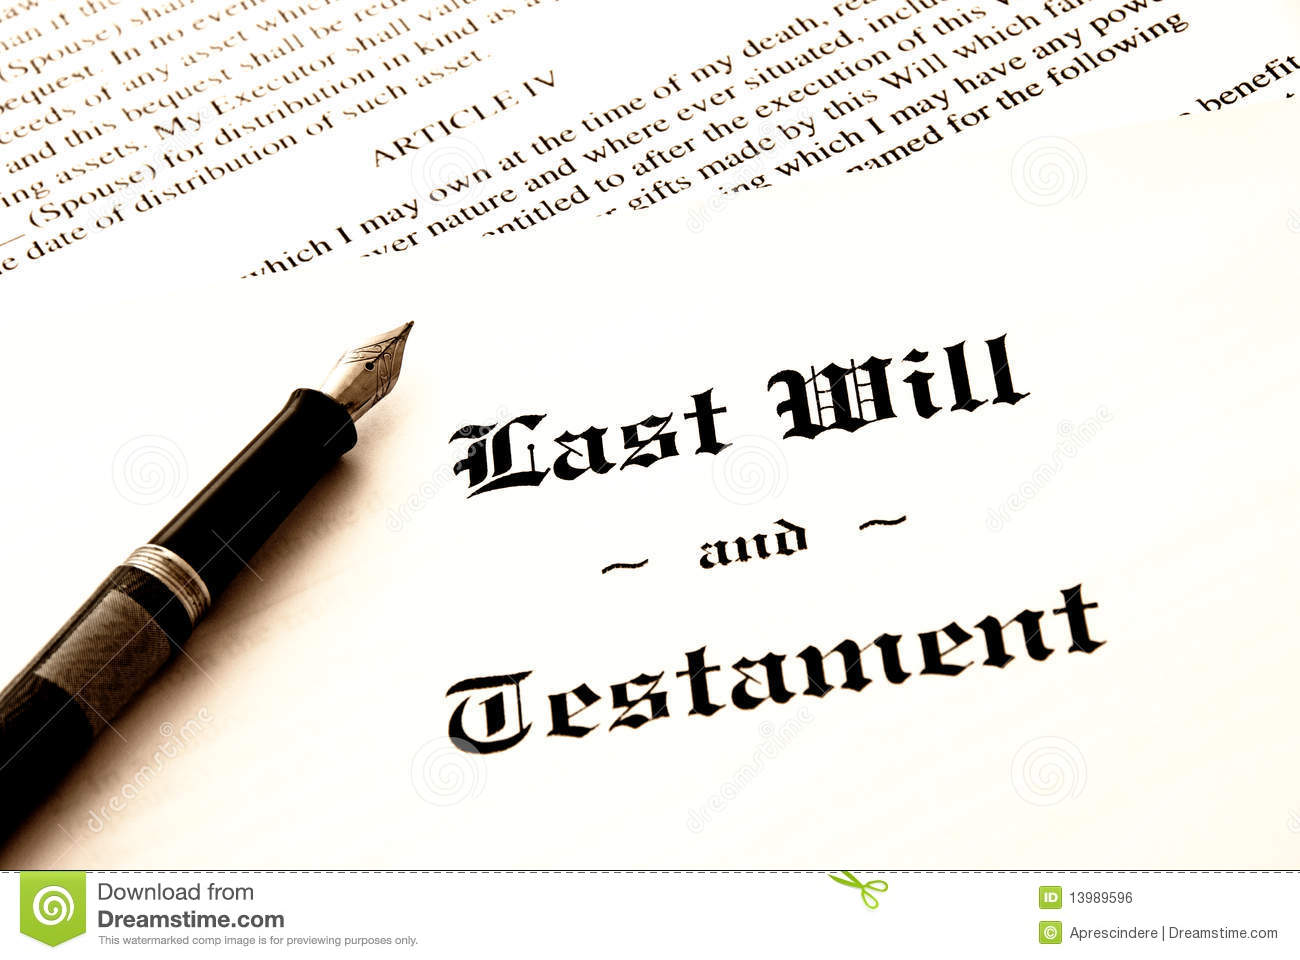 Court Confirms Requirements for a Valid Will